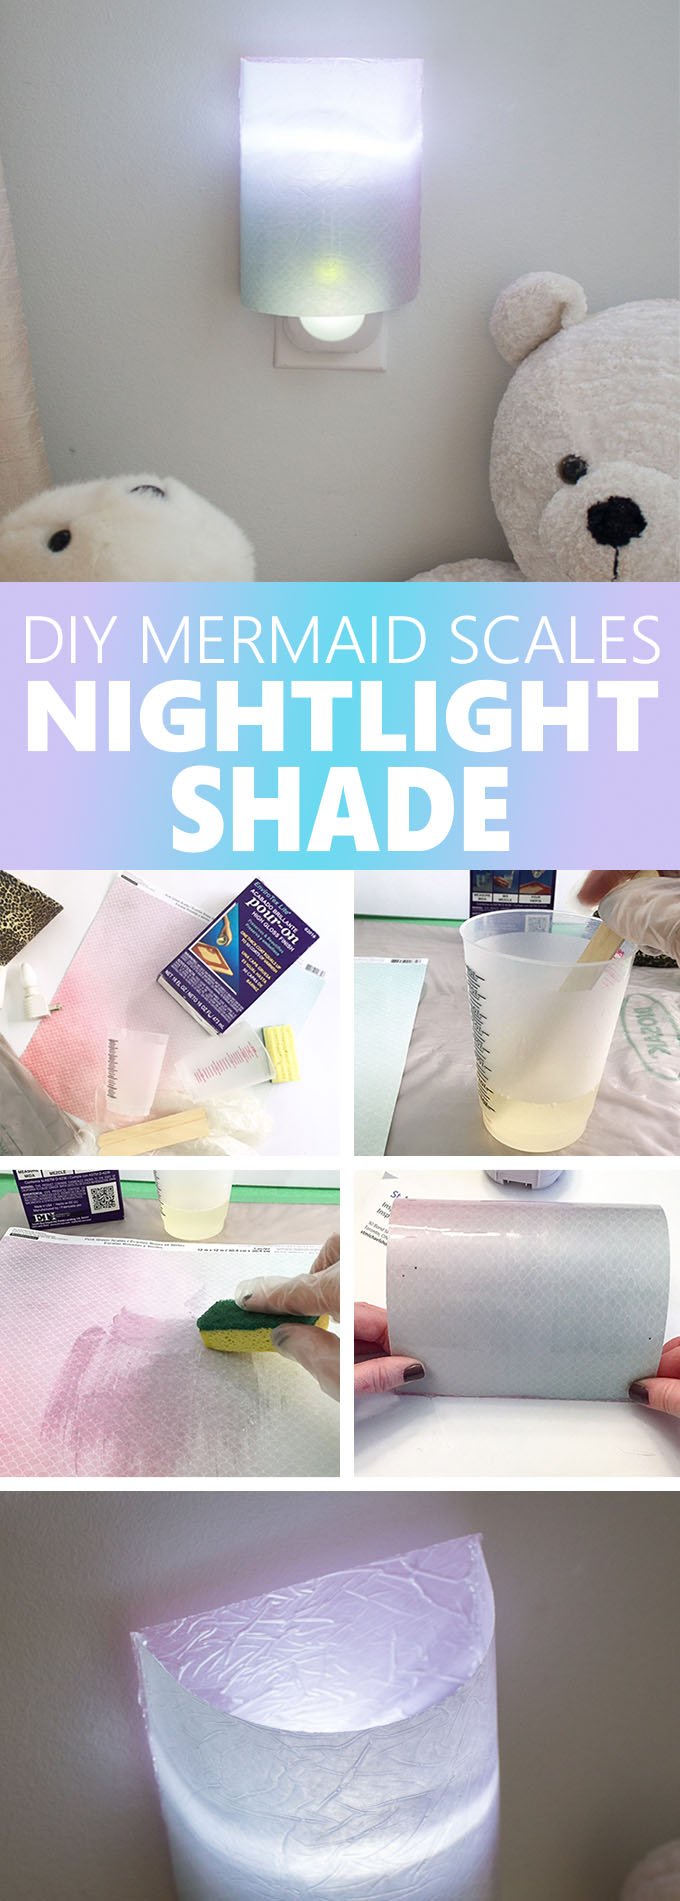 So clever! Mermaid-themed shade for a nightlight. Learn how to make a resin paper DIY night light cover. Cute kids bedroom decor. #resincrafts #resincraftsblog #mermaid #nightlight